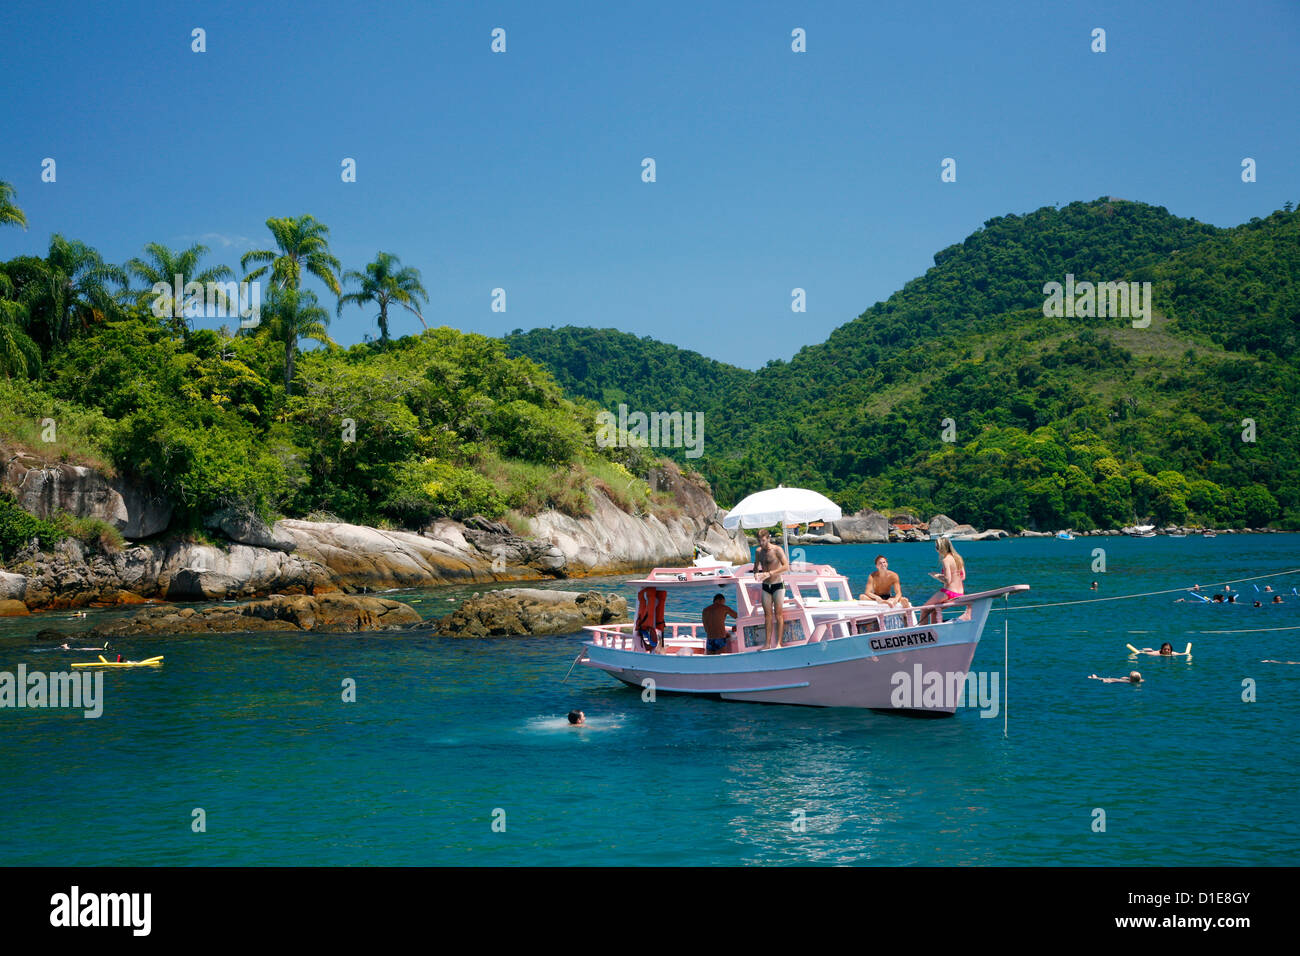 Tourist on a fishing boat cruising between the different beaches and islands around Parati, Rio de Janeiro State, - Stock Image